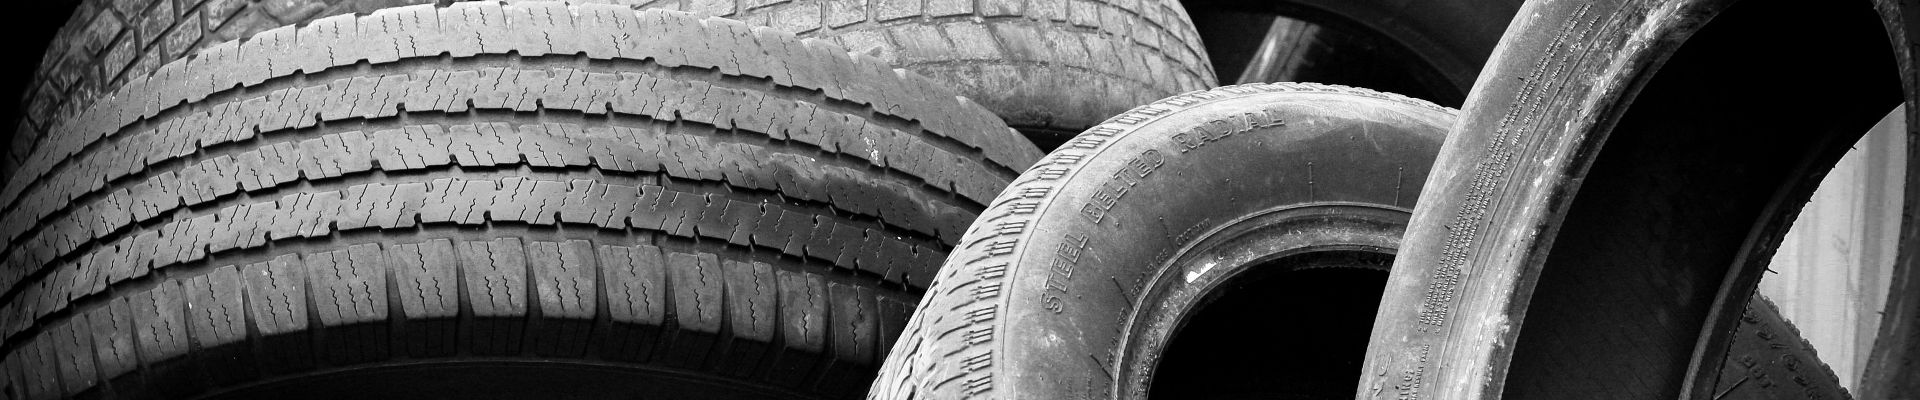 Tire Equipment Installation and Repair